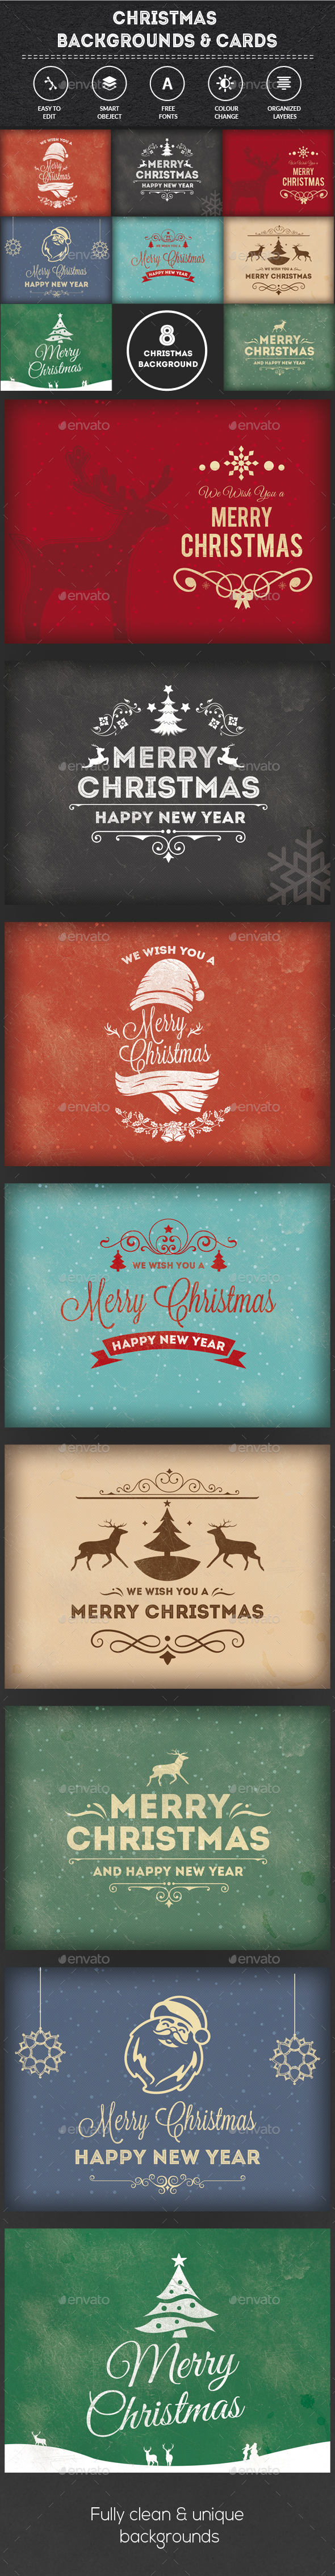 Christmas Backgrounds-Cards - Backgrounds Graphics